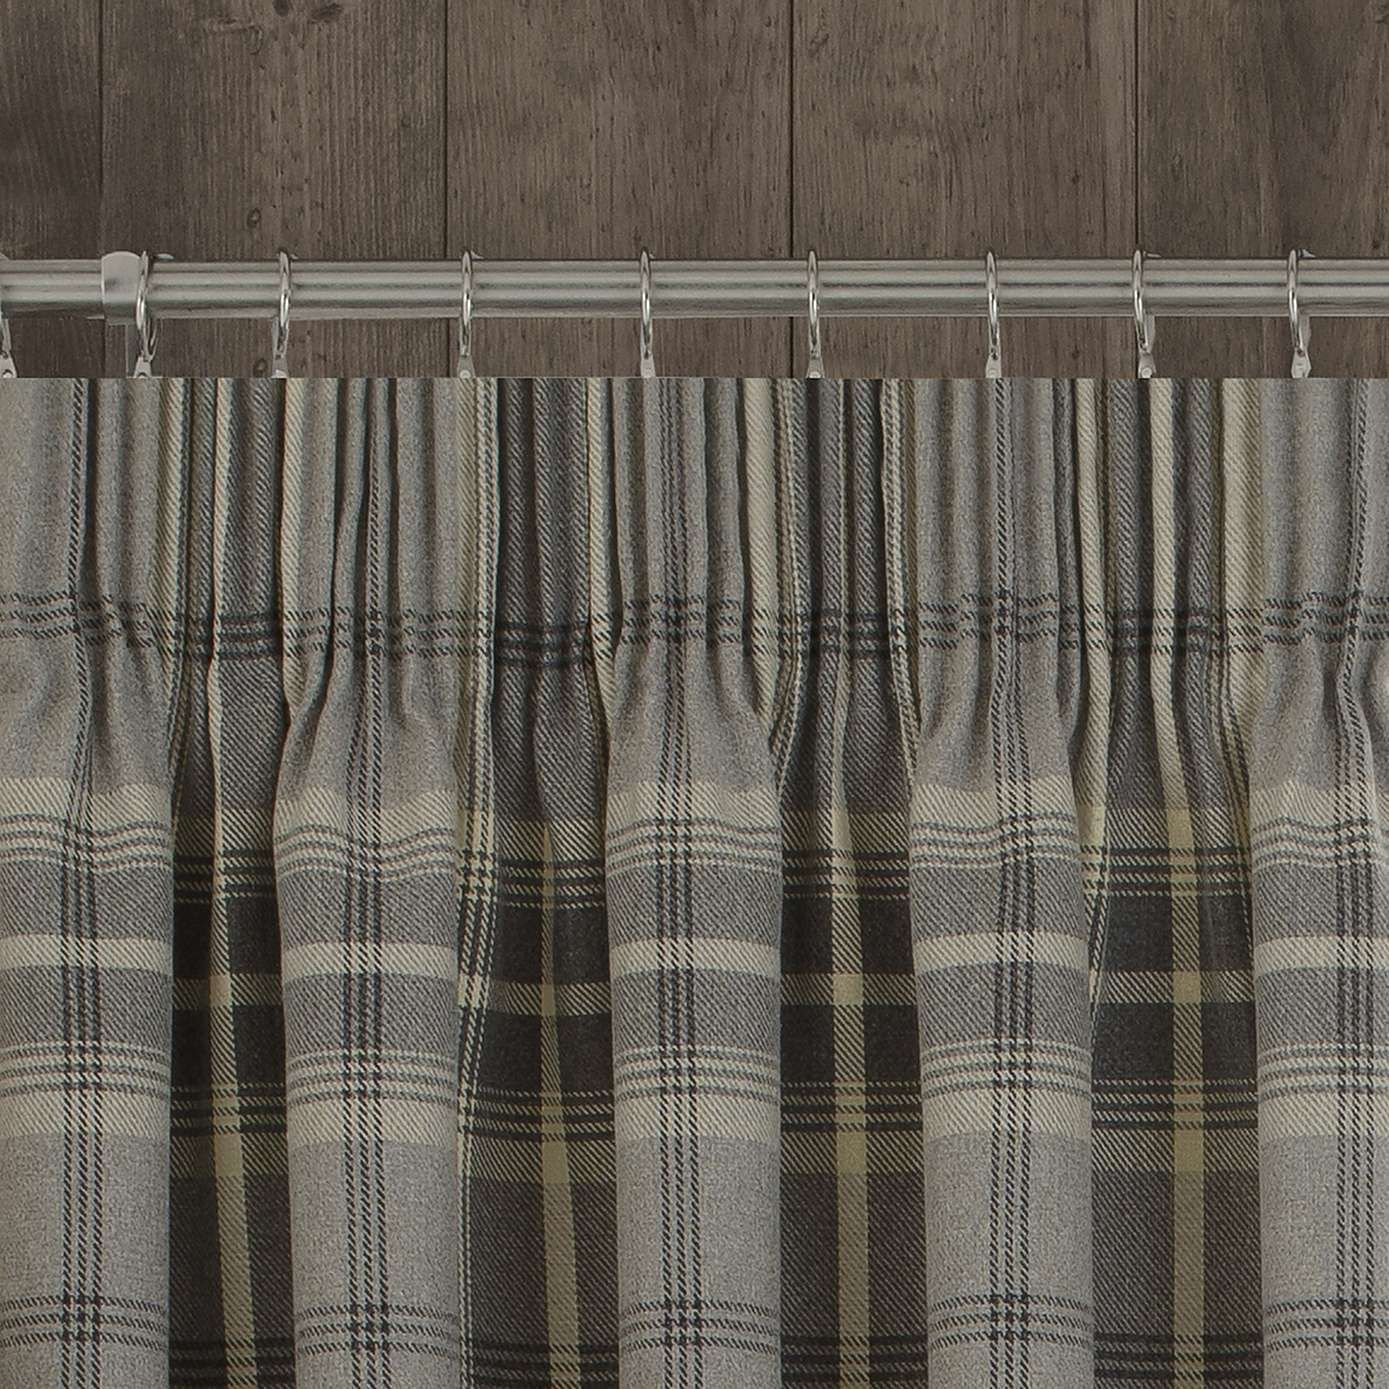 Highland Check Dove Grey Pencil Pleat Curtains In 2020 Grey Pencil Pleat Curtains Pleated Curtains Pencil Pleat